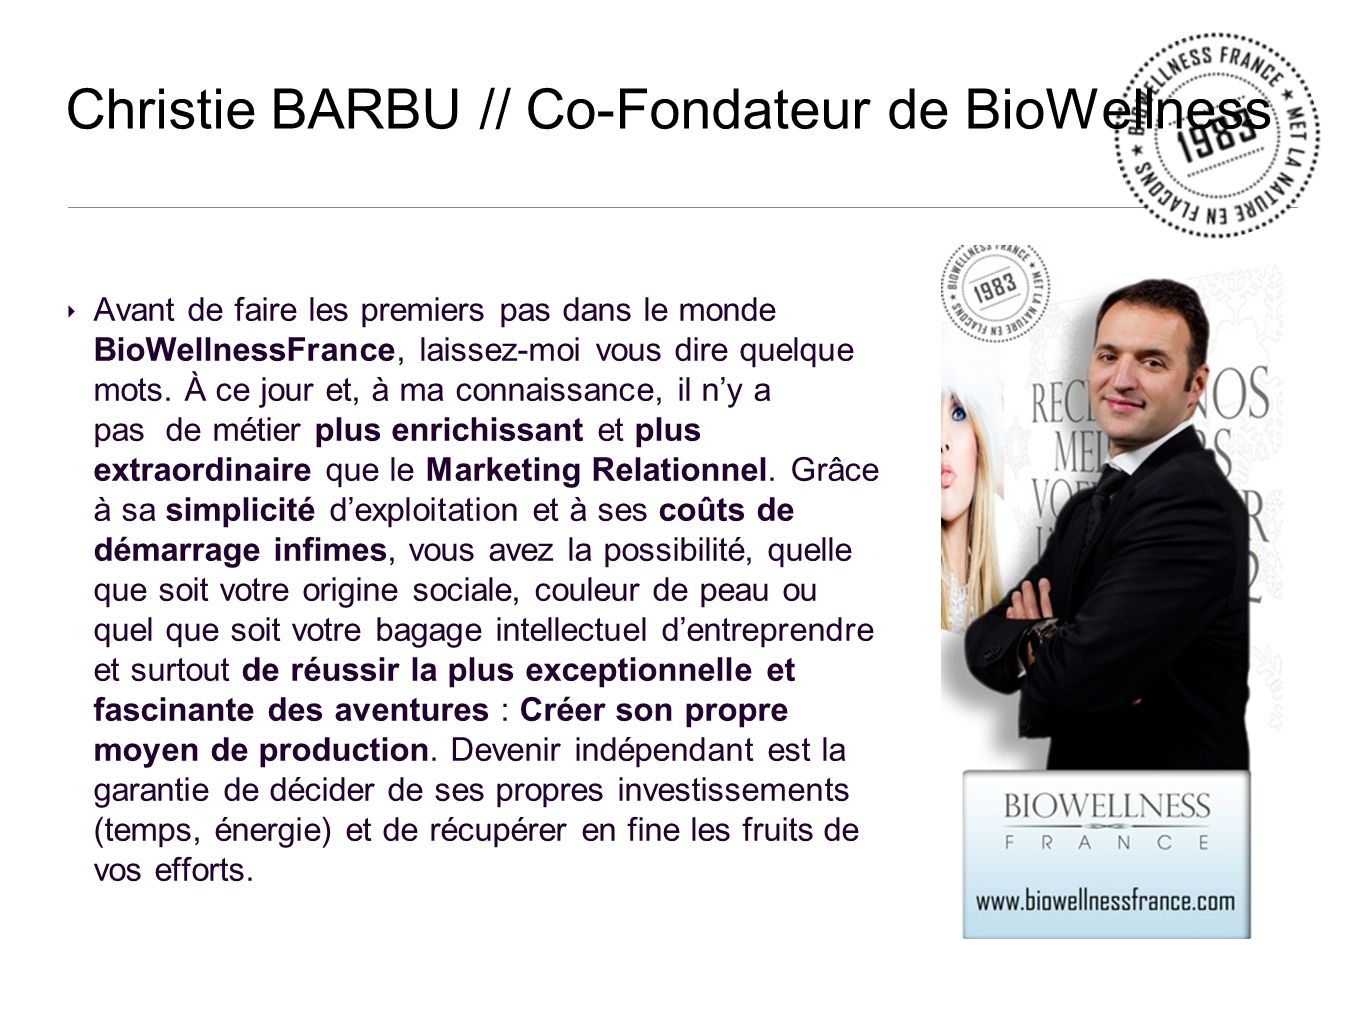 Christie BARBU // Co-Fondateur de BioWellness